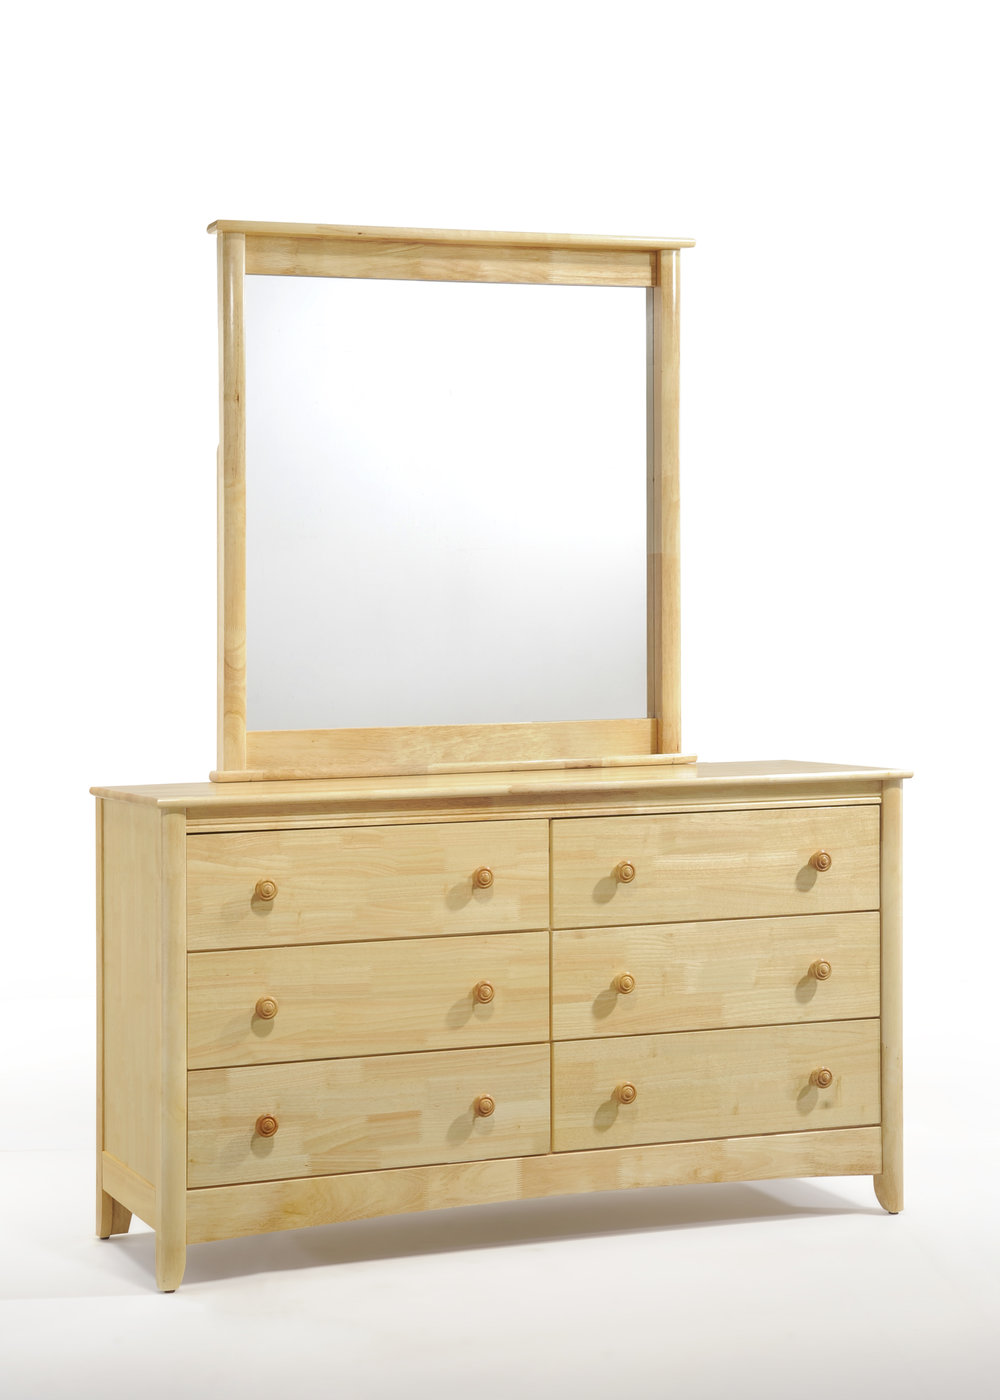 Secrets 6 Drawer Dresser & Mirror Natural.jpg